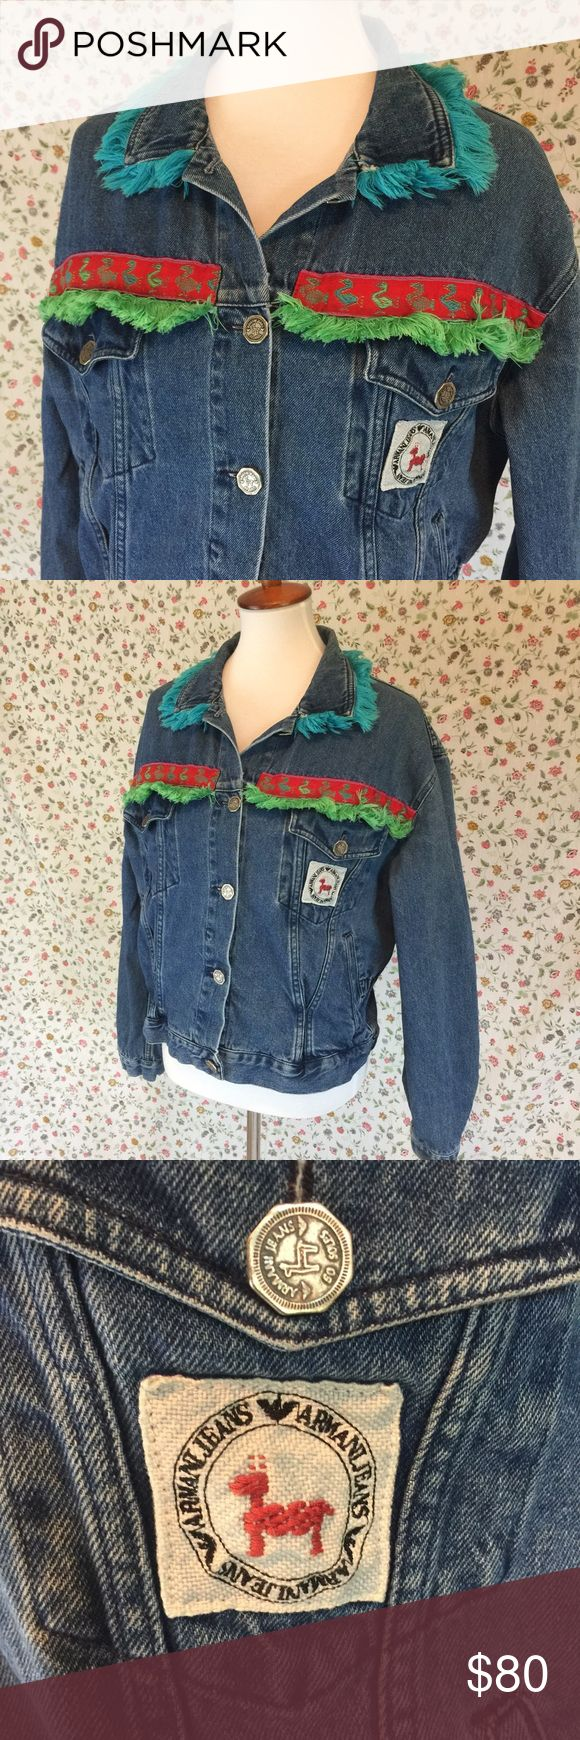 """Vintage 80's 90's Armani Jean Jacket Fringe Alpaca Vintage Armani Jacket, made in Italy. Alpaca logo on buttons, ribbon detail and breast. Also features colorful fringe around lapel and across chest. Elastic detail at back/sides of jacket. Size says """"Taglia 44."""" Approximately a women's size medium, shown here on a size 6 model. Overall good vintage condition with no flaws.      Bust/armpit to armpit, laid flat unstretched: 21.5""""     Length from collar to hem: 20.75""""     Sleeve length: 23""""…"""